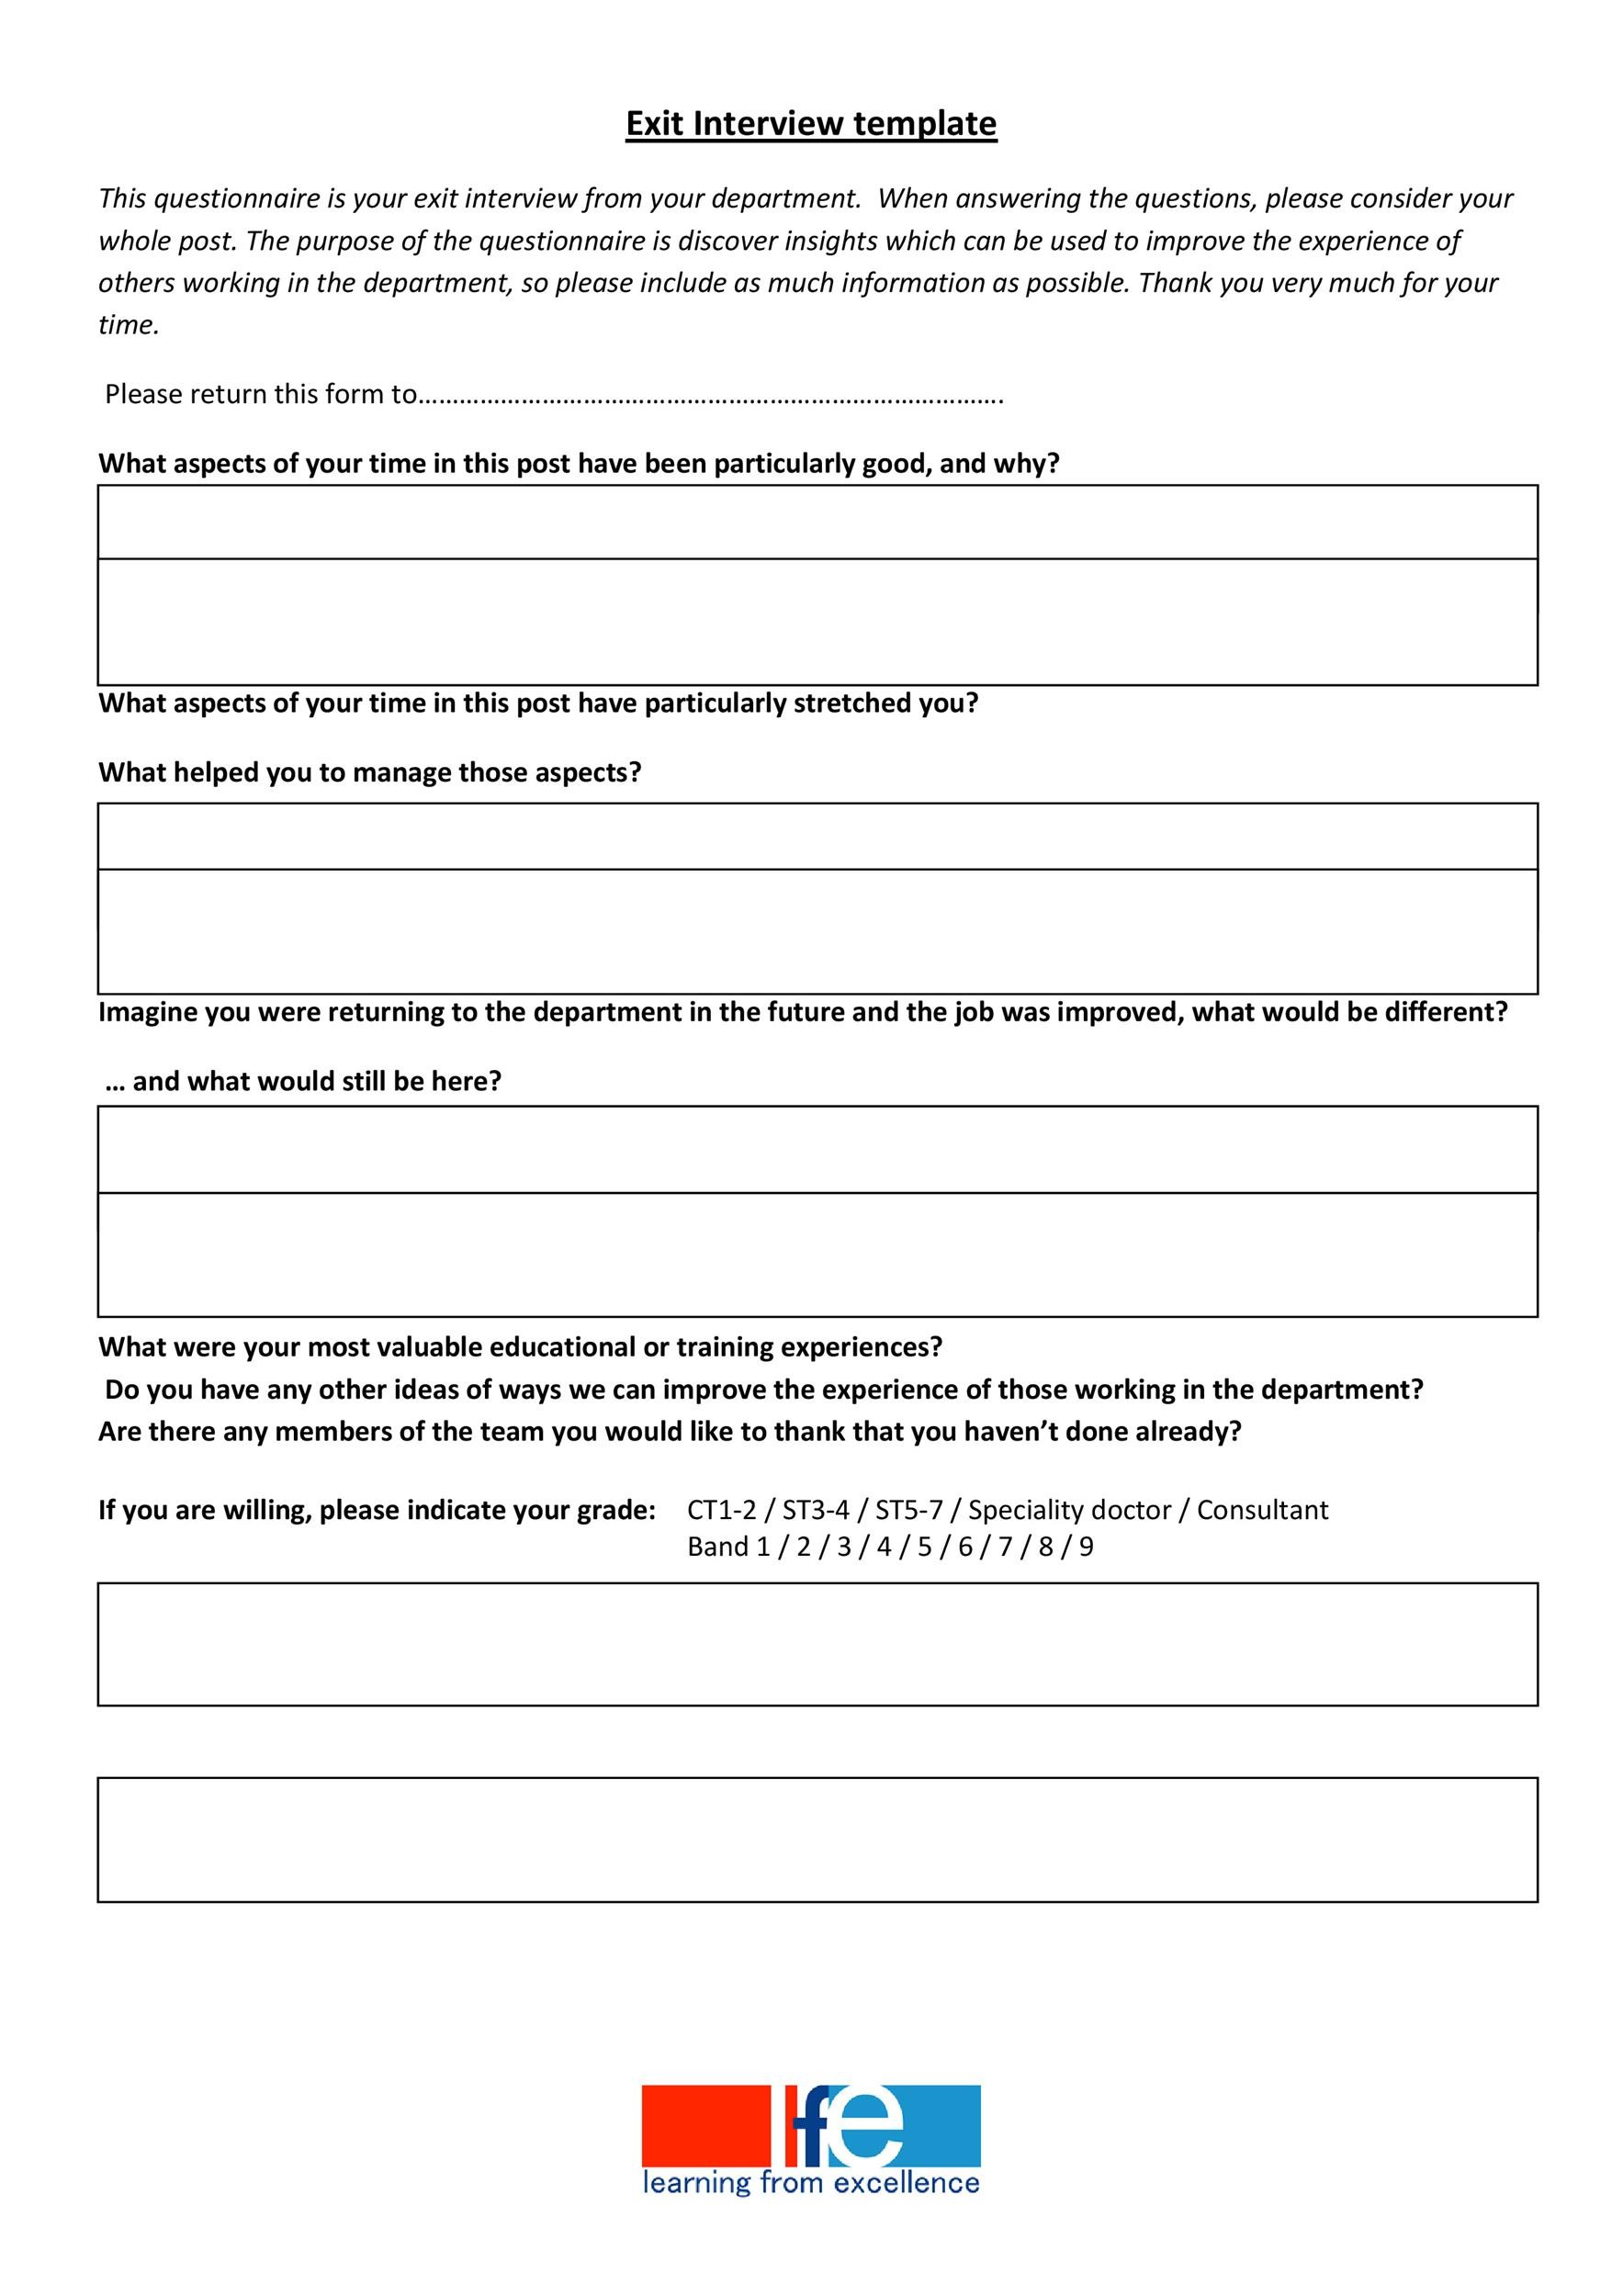 Free exit interview template 16